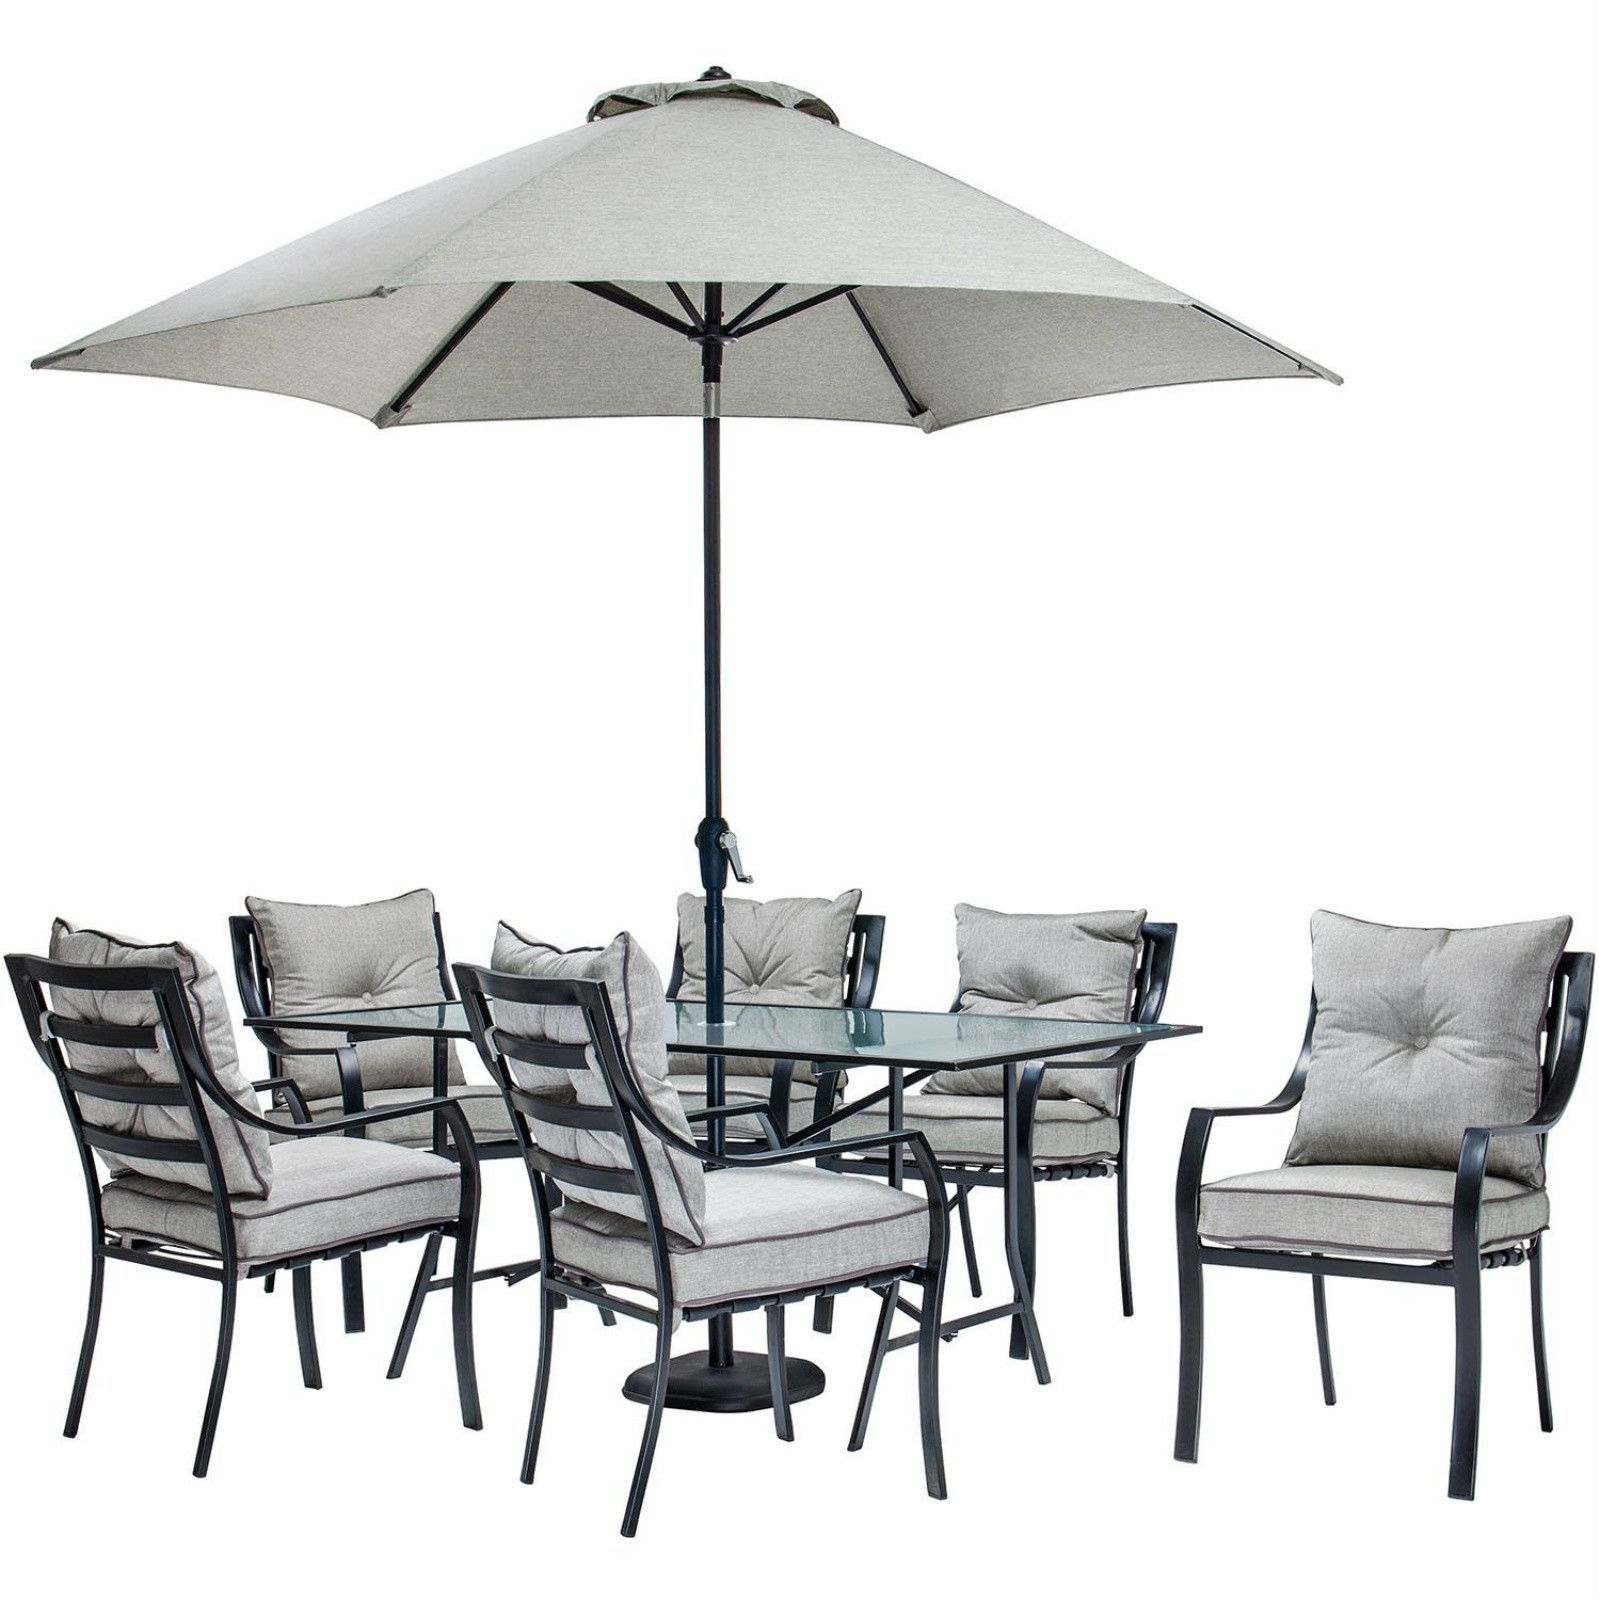 Outdoor 7pc dining set w umbrella glass top table 6 chairs cushions backyard outdoor 7 pc dining set will transform your backyard into an elegant outdoor